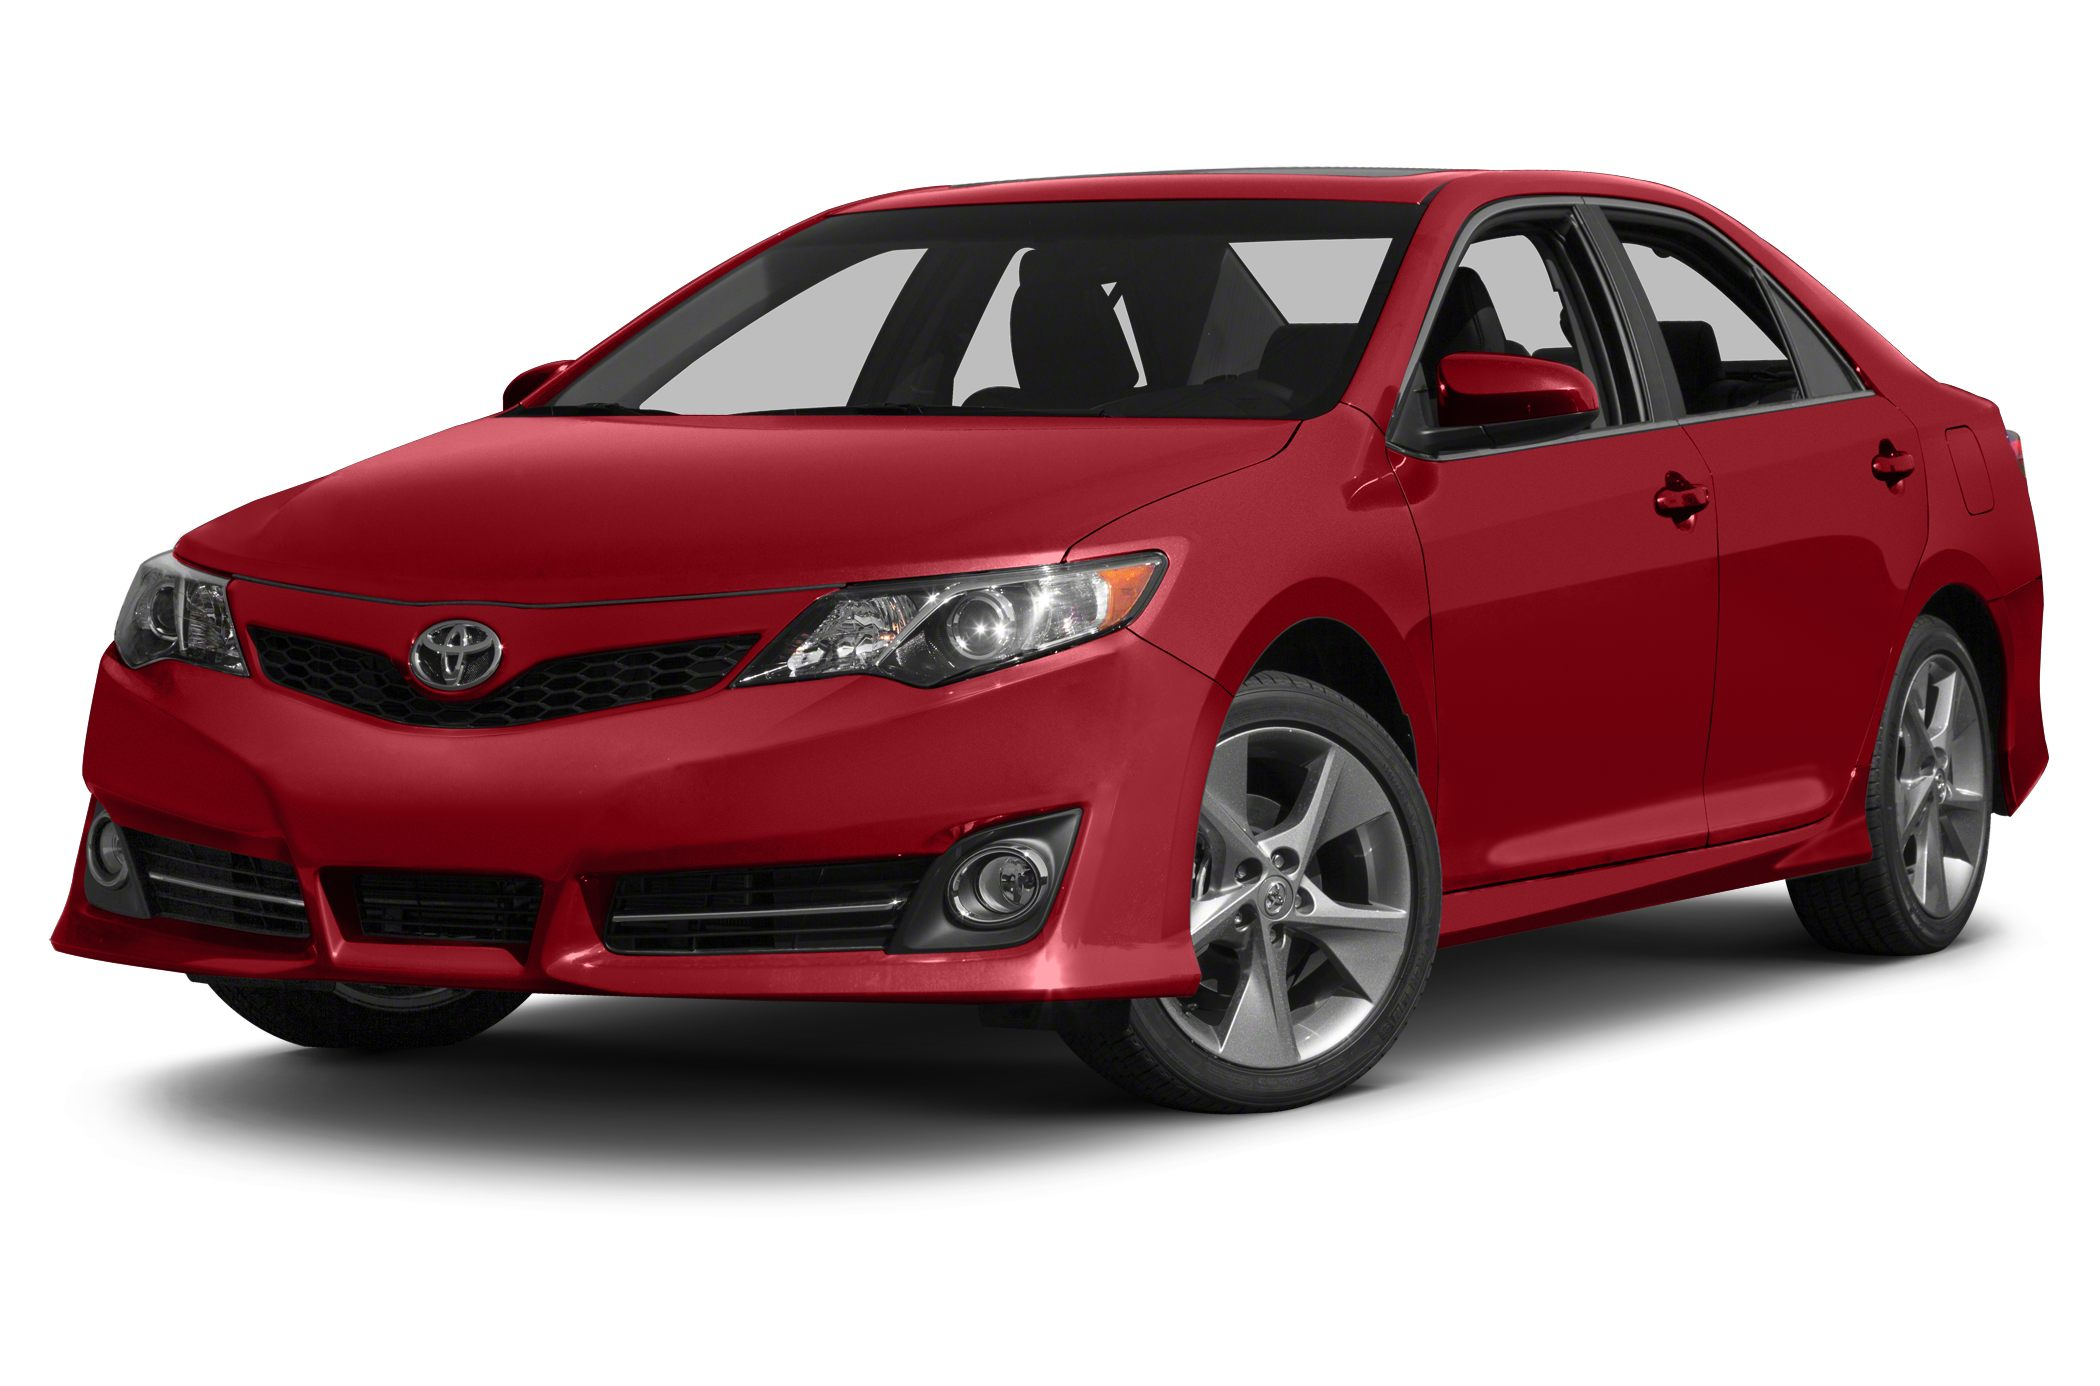 2014 Toyota Camry SE CARFAX 1-Owner GREAT MILES 36891 FUEL EFFICIENT 35 MPG Hwy25 MPG City P